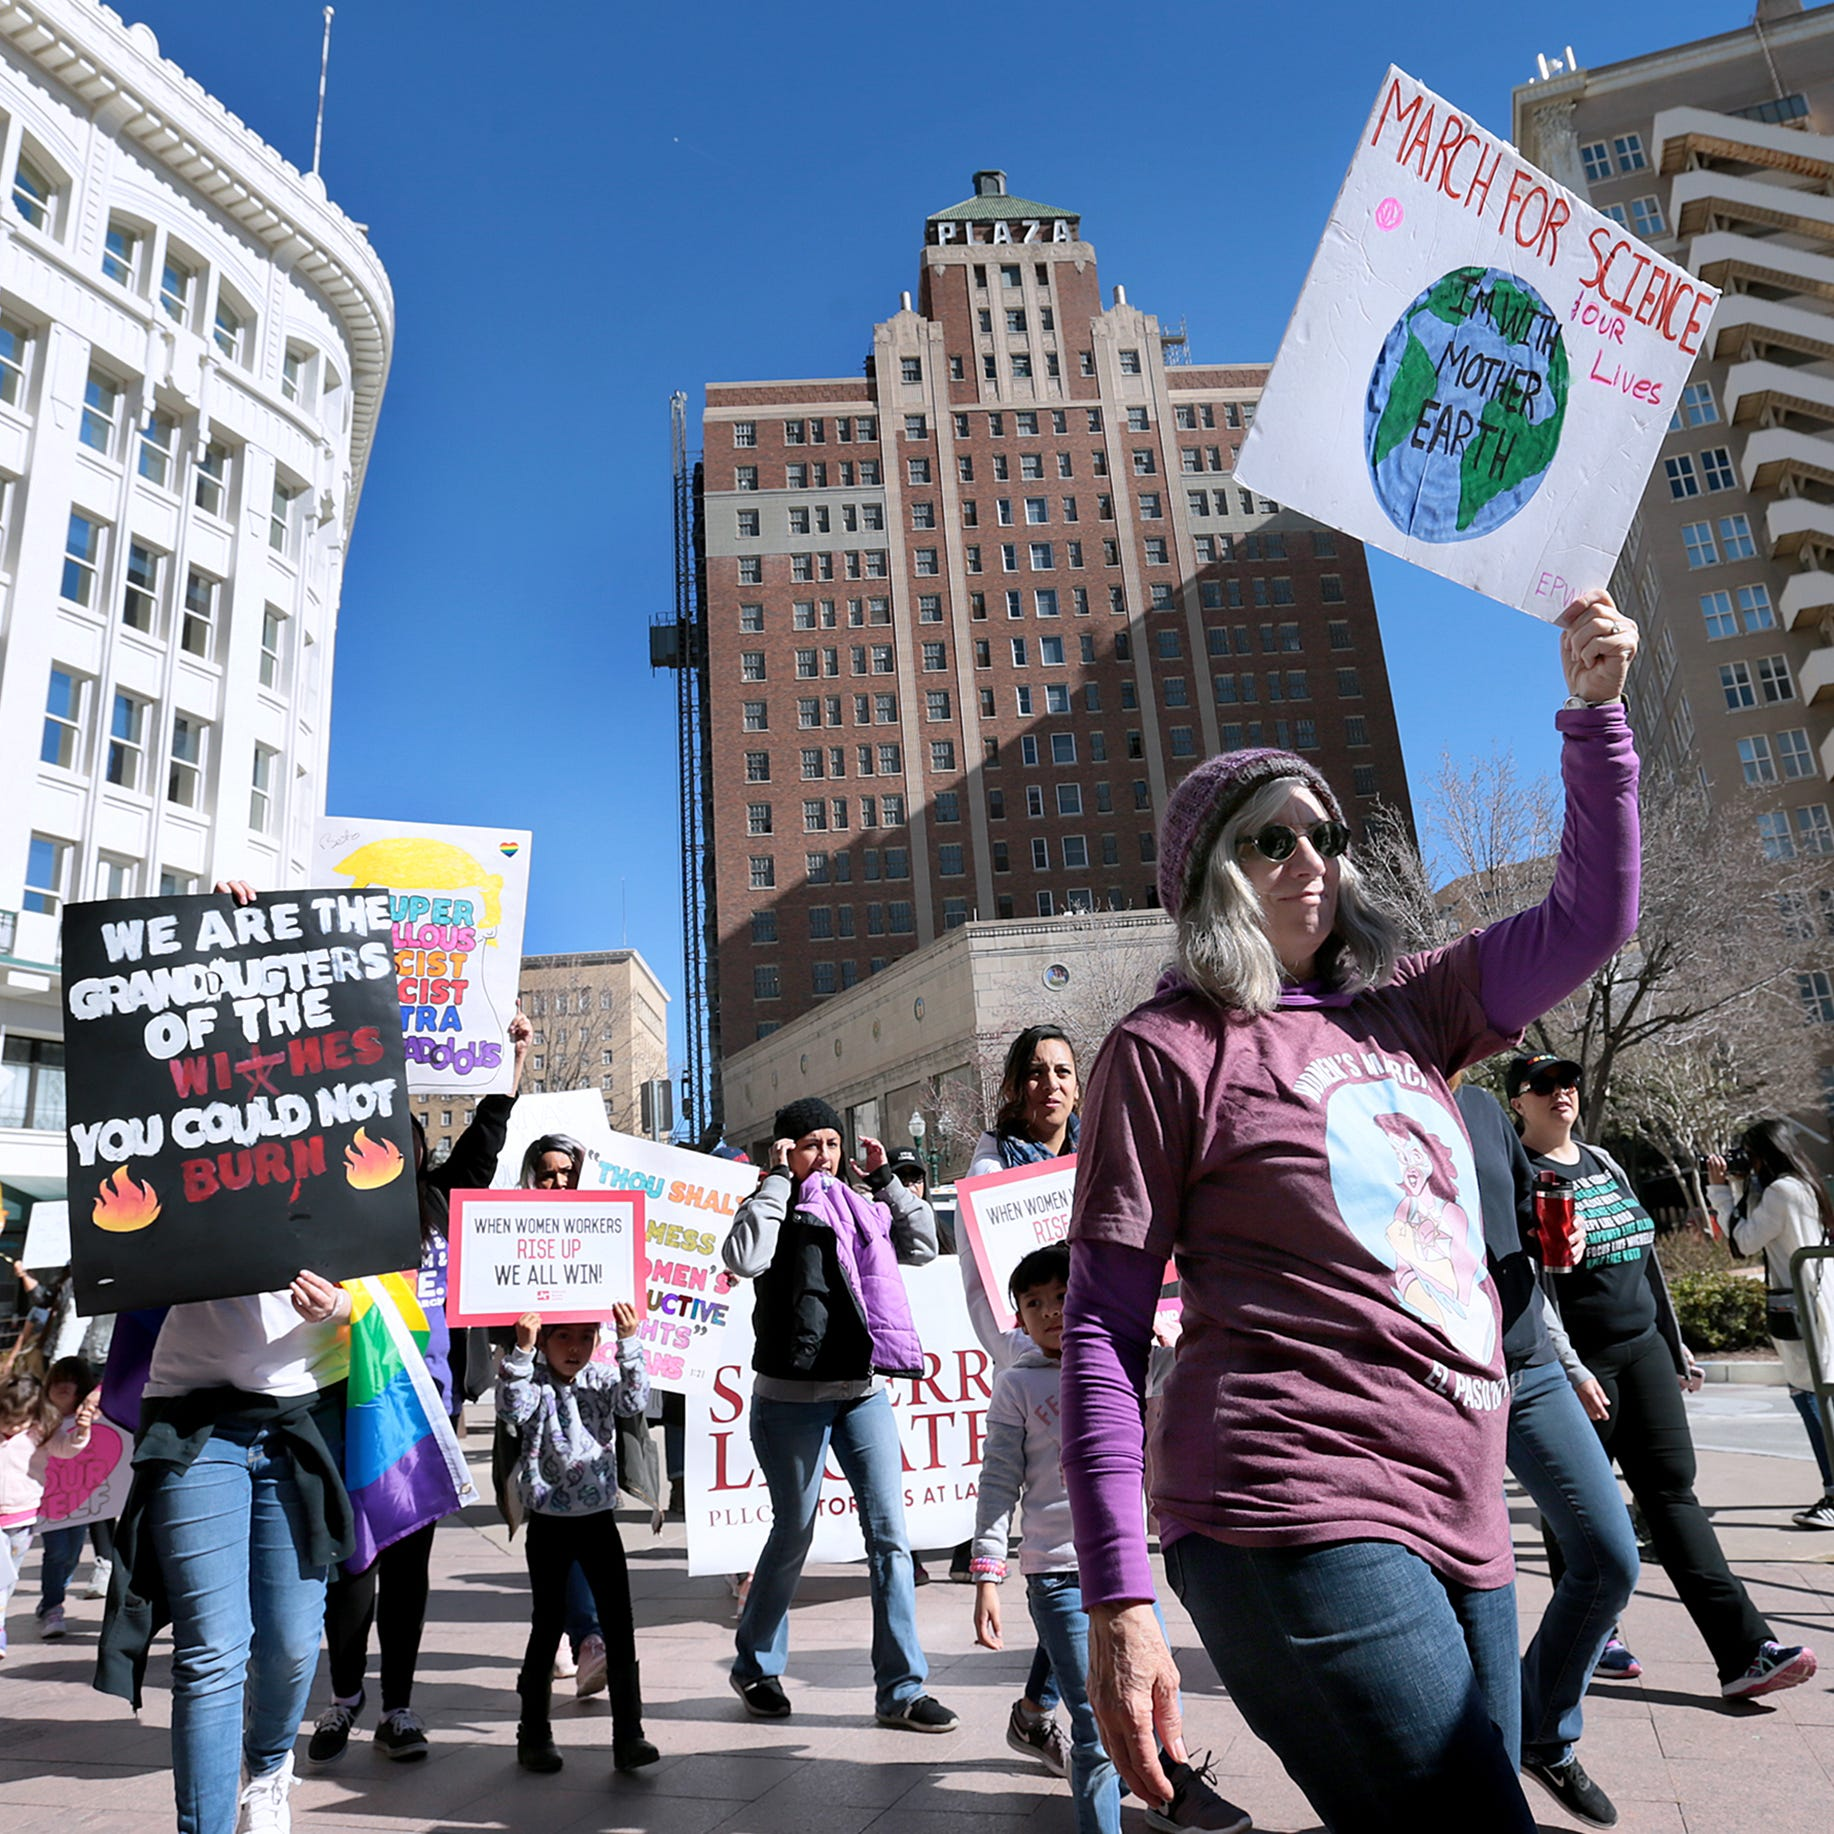 Beto O'Rourke, Veronica Escobar join hundreds at Women's March in Downtown El Paso